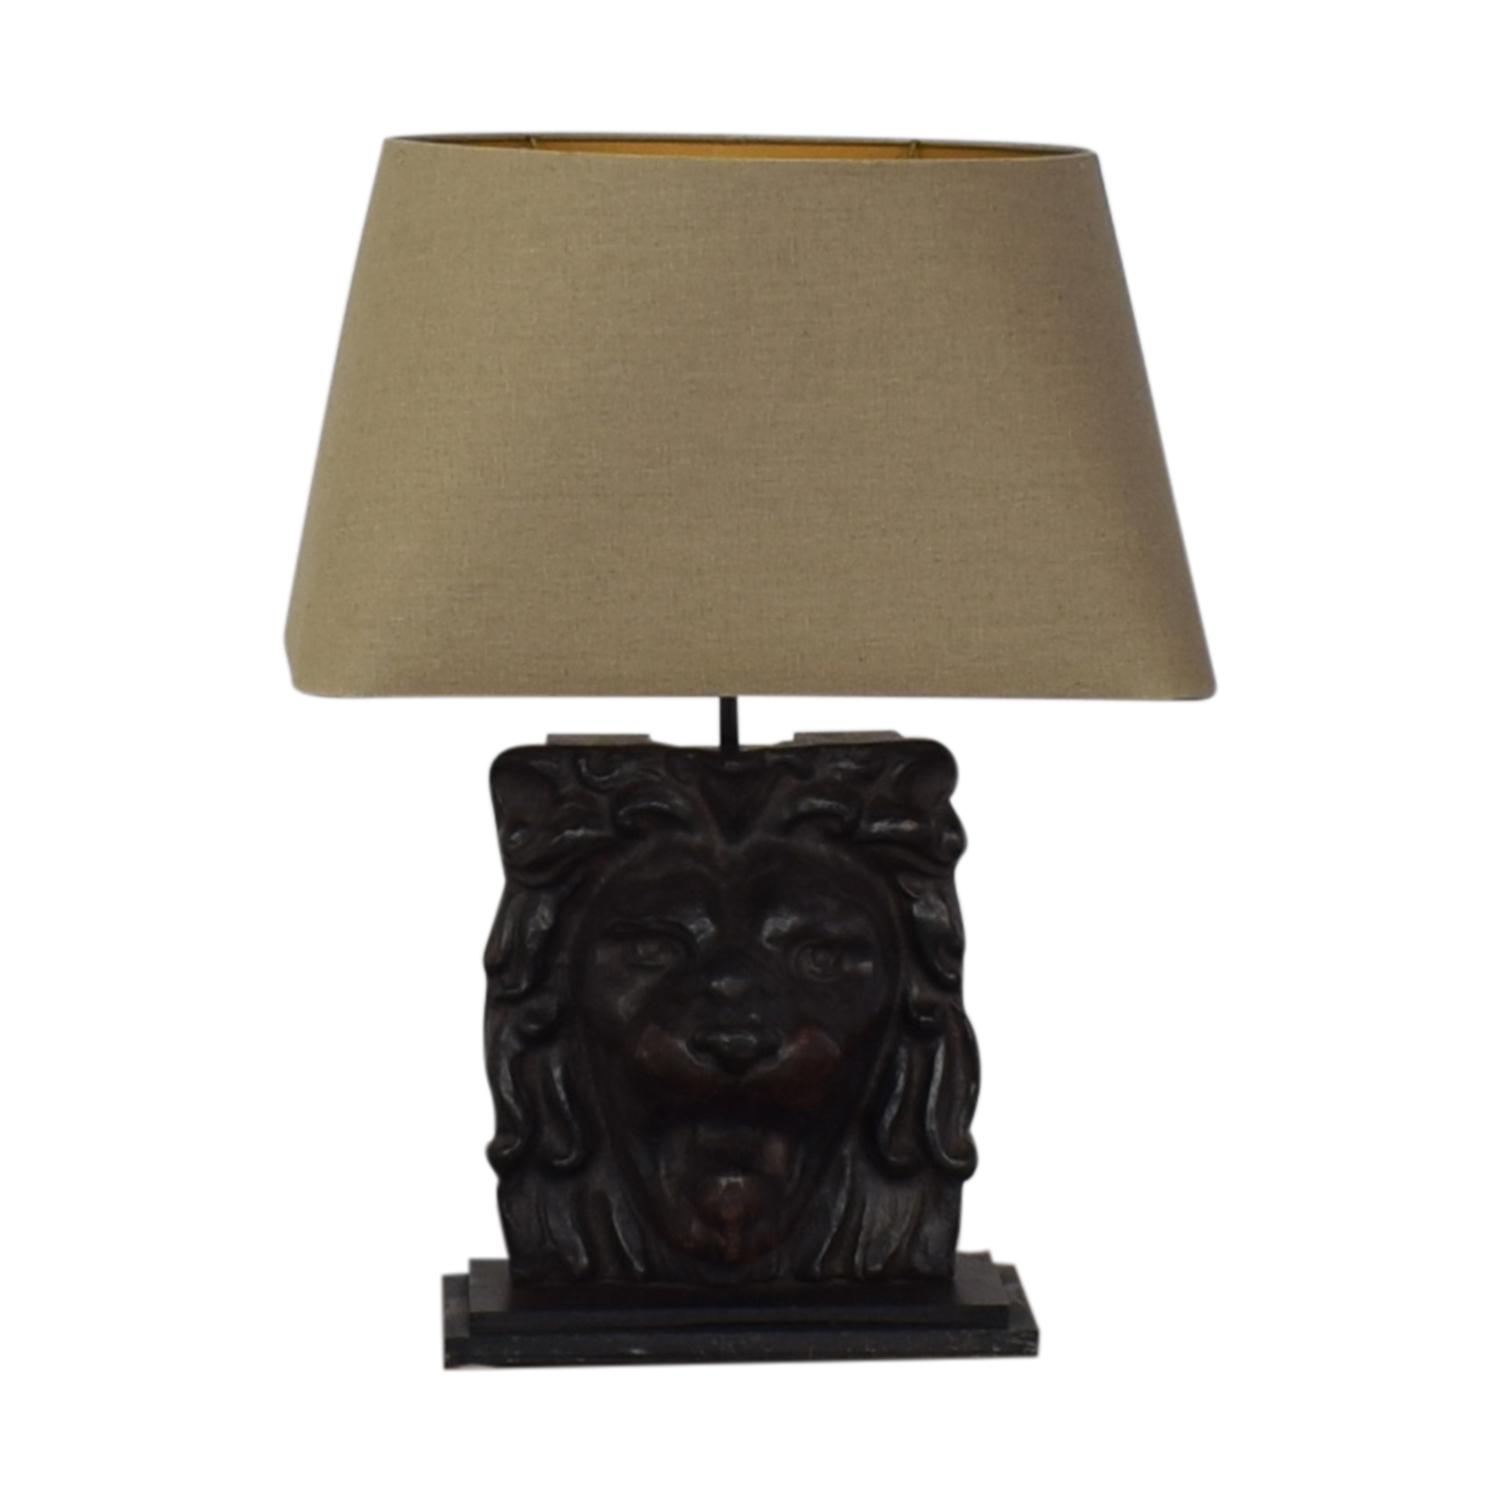 Restoration Hardware Lion's Head Table Lamp / Lamps